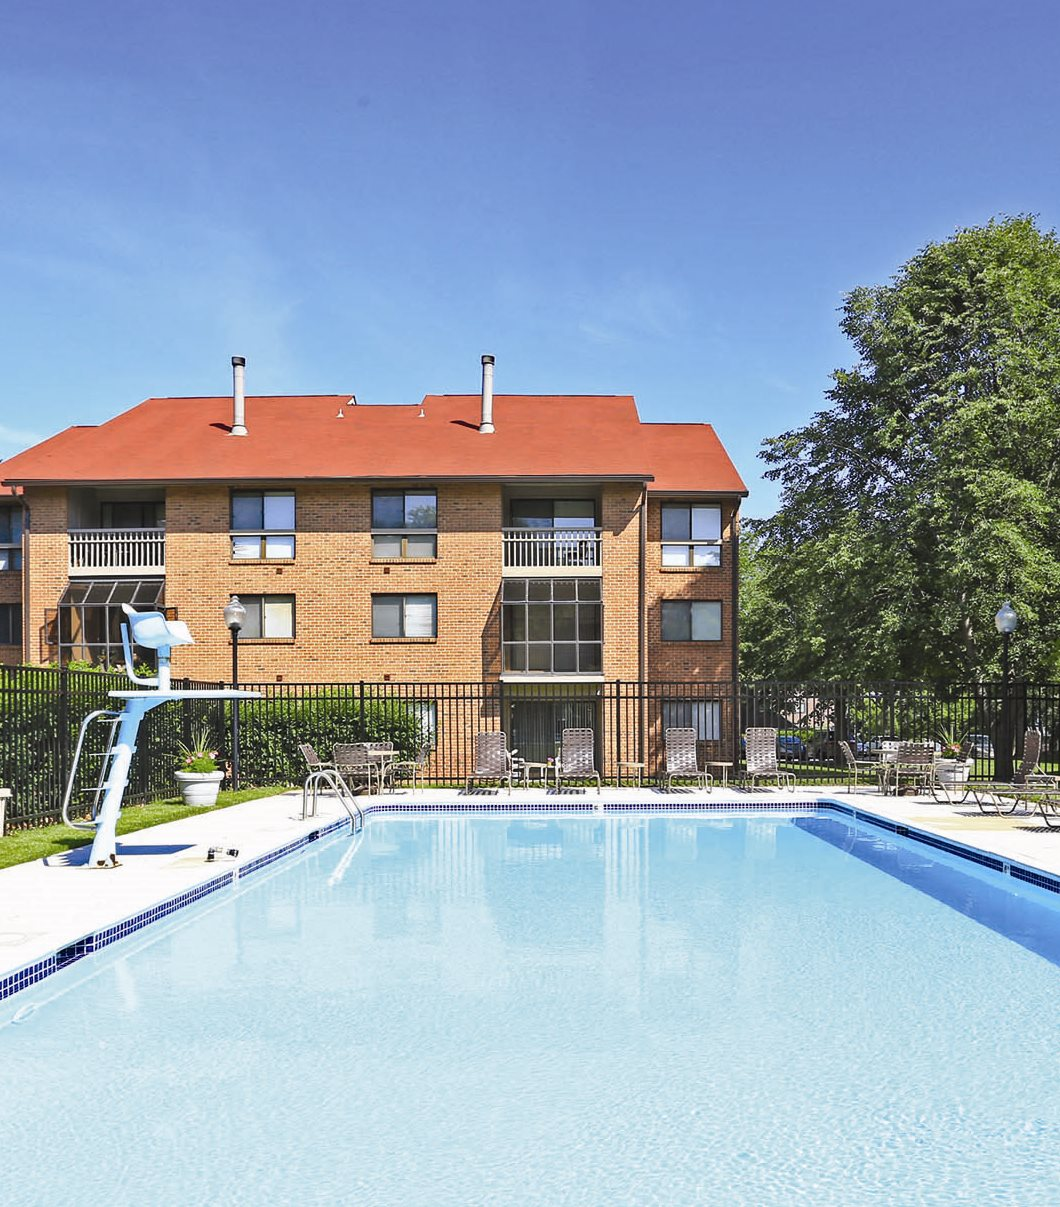 Apartments In Columbia Md: Apartments In Columbia, MD